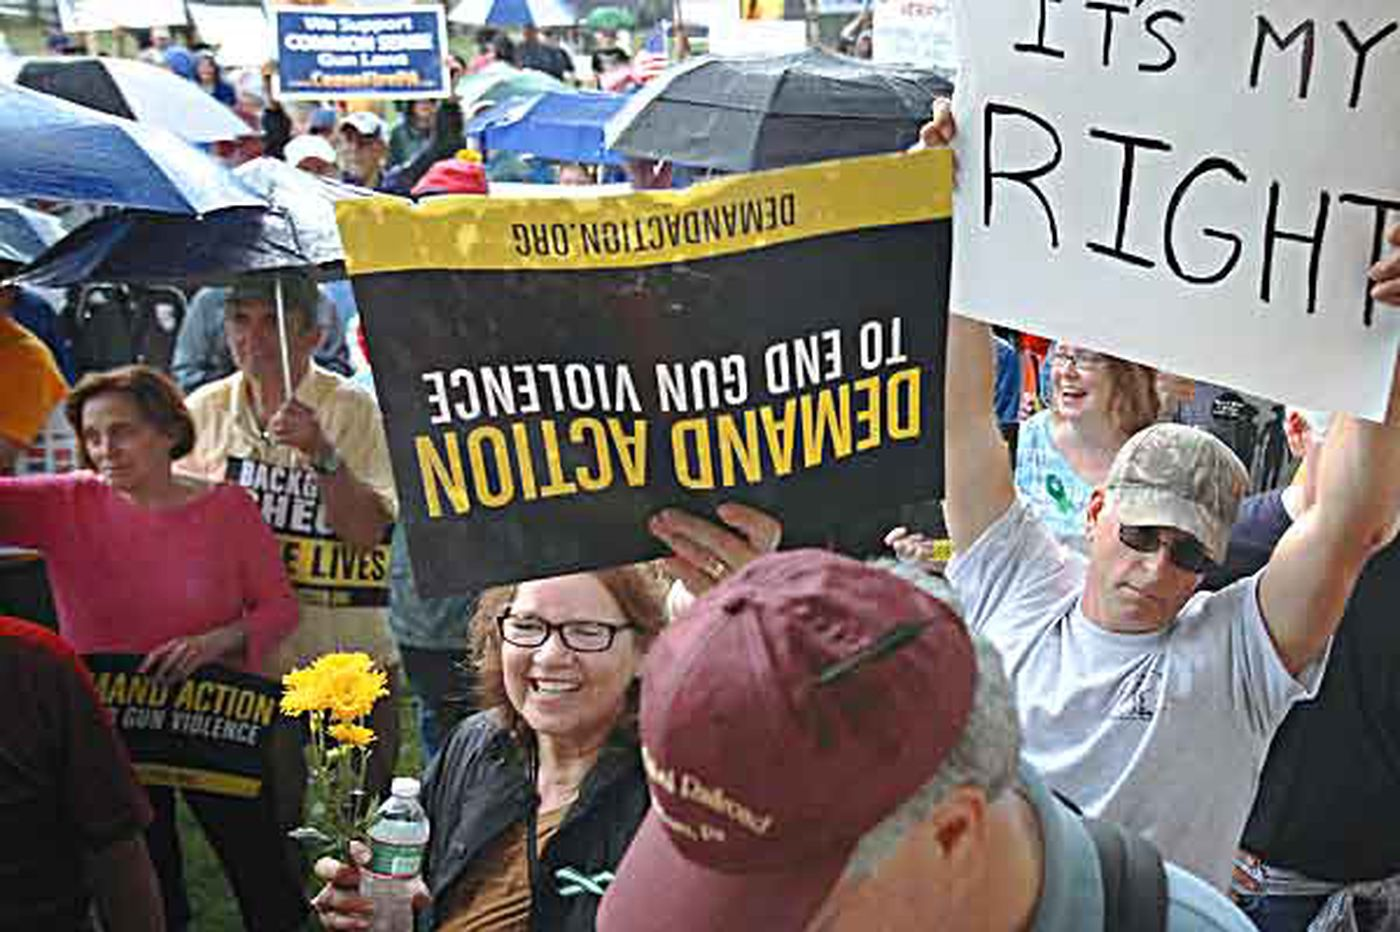 Pro and anti-gun groups rally in Morrisville